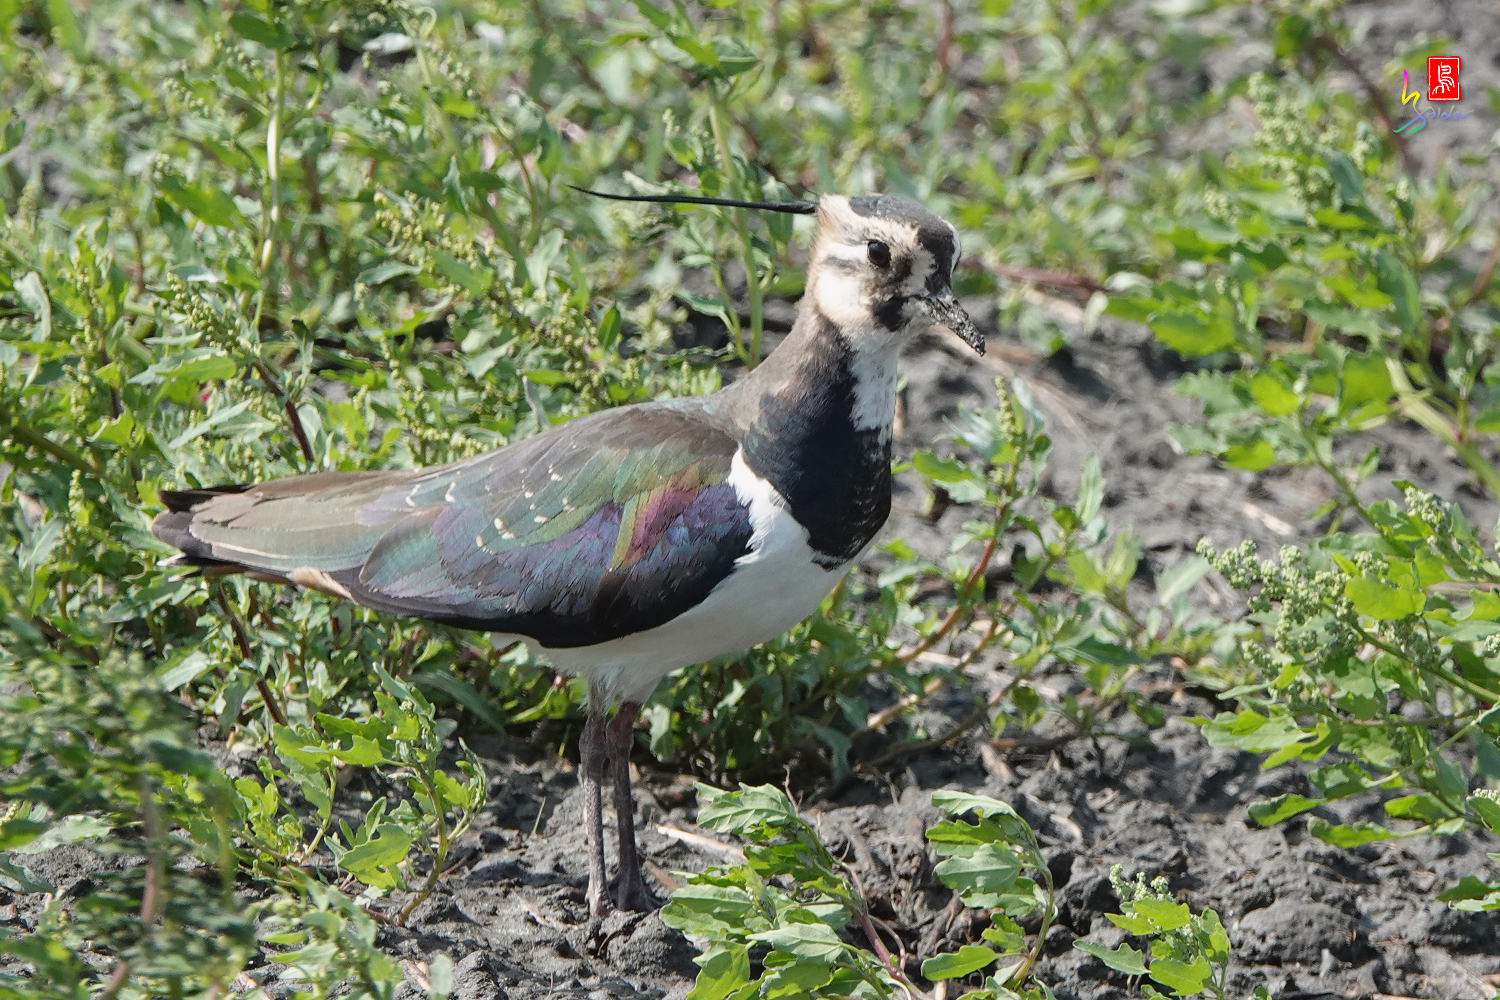 Nprthern_Lapwing08723